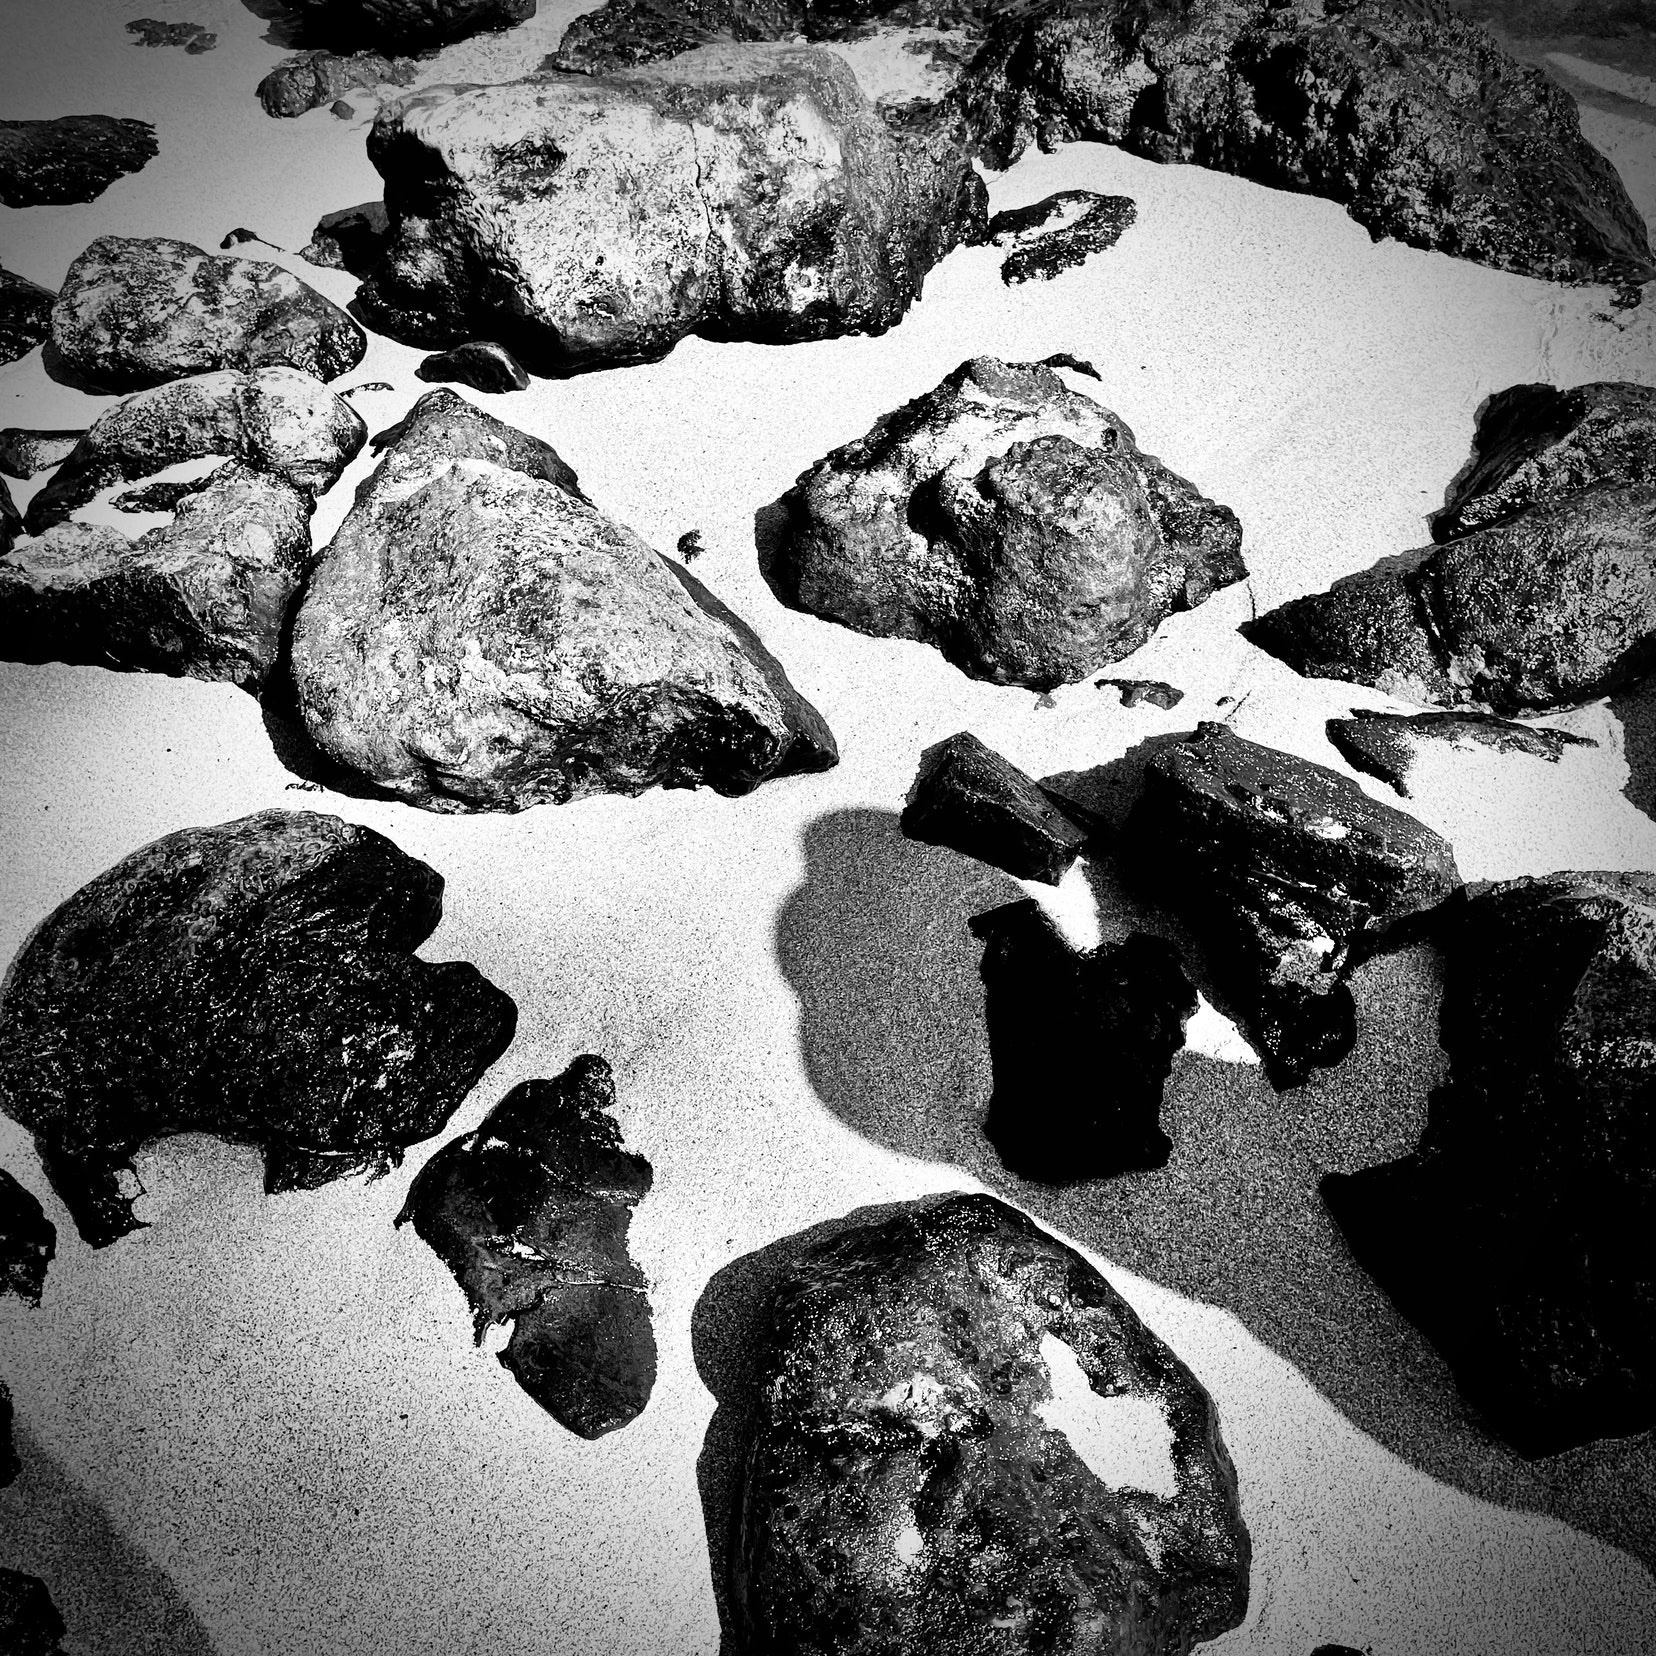 Rocks and sand, black and white.